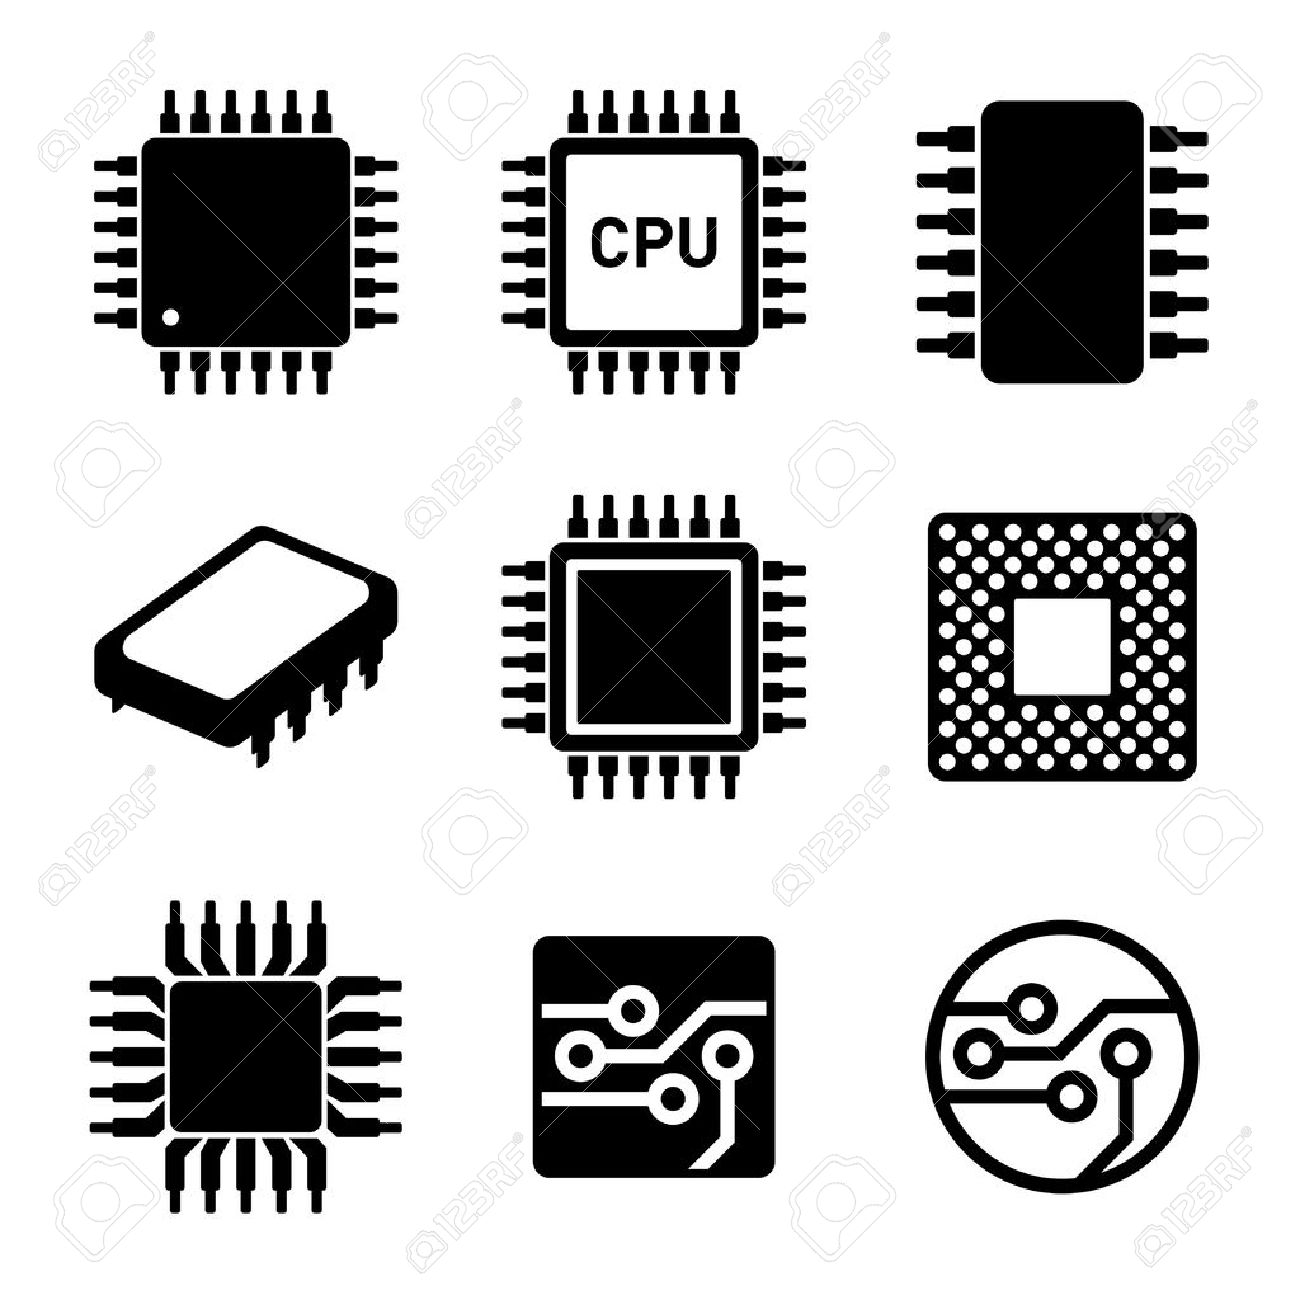 CPU Microprocessor and Chips Icons Set. Vector illustration. - 45013769